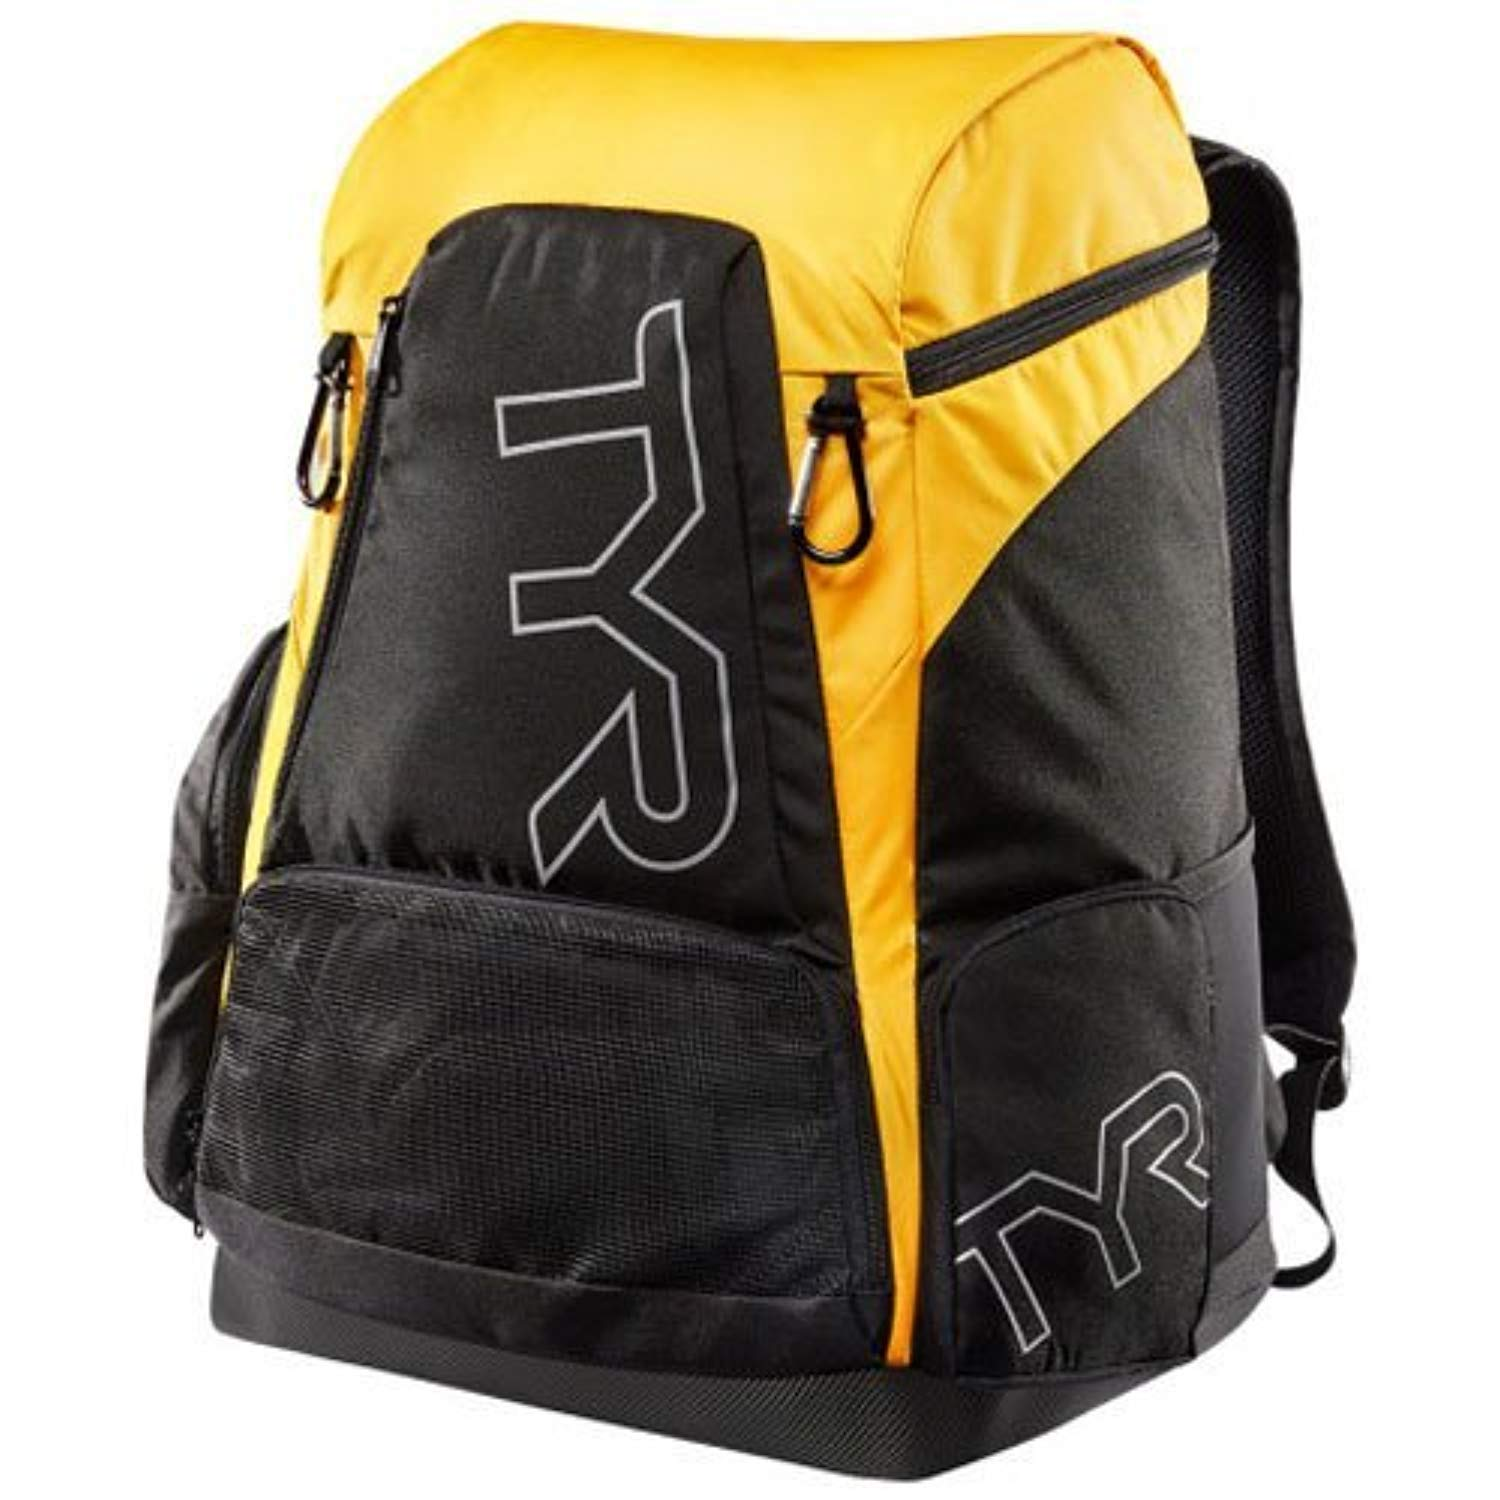 Swim Bundle: TYR Alliance 45L Backpack Black/Gold All & Swimming Earplugs by Competition Swimwear